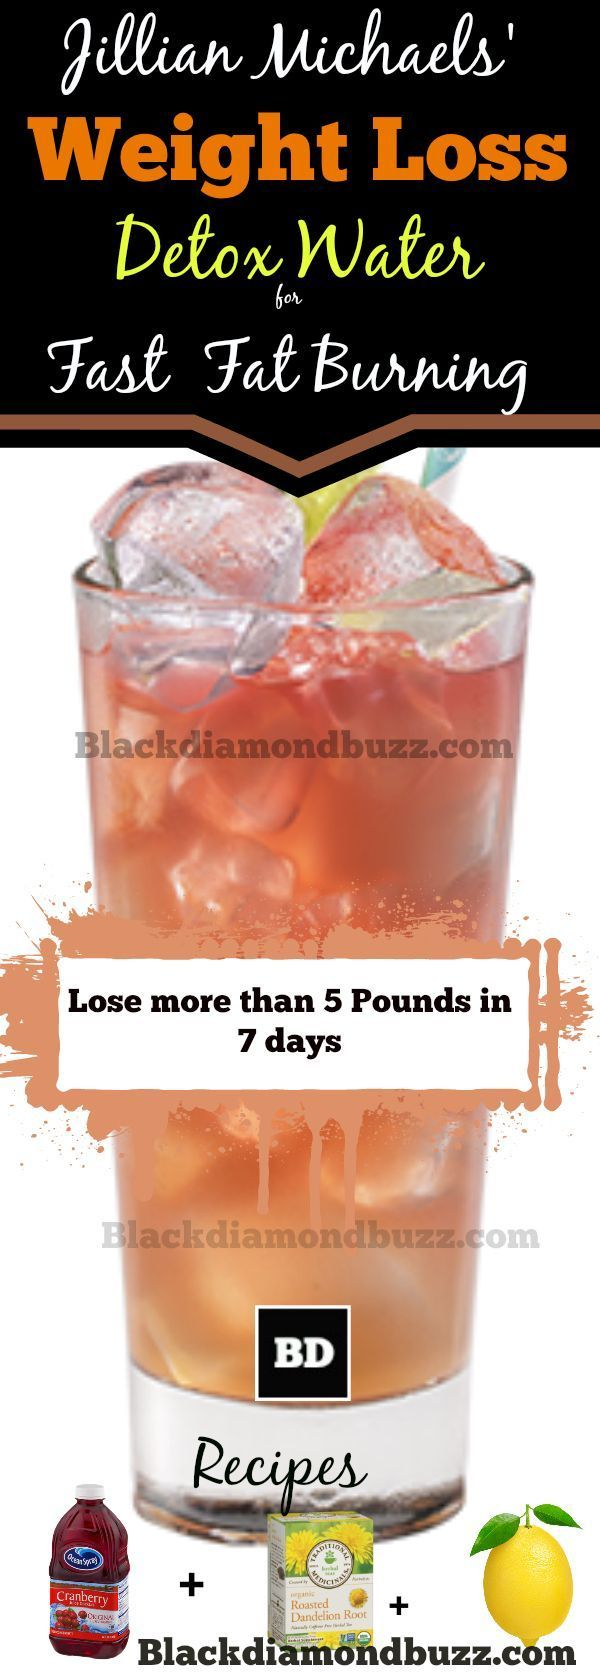 Jillian Michaels' weight loss detox water is a natural diuretic drink made with distilled water, organic dandelion root tea, lemon juice and cranberry juice. It is a 7-day detox drink promoted by Jillian Michaels for quick weight, especially to get rid of